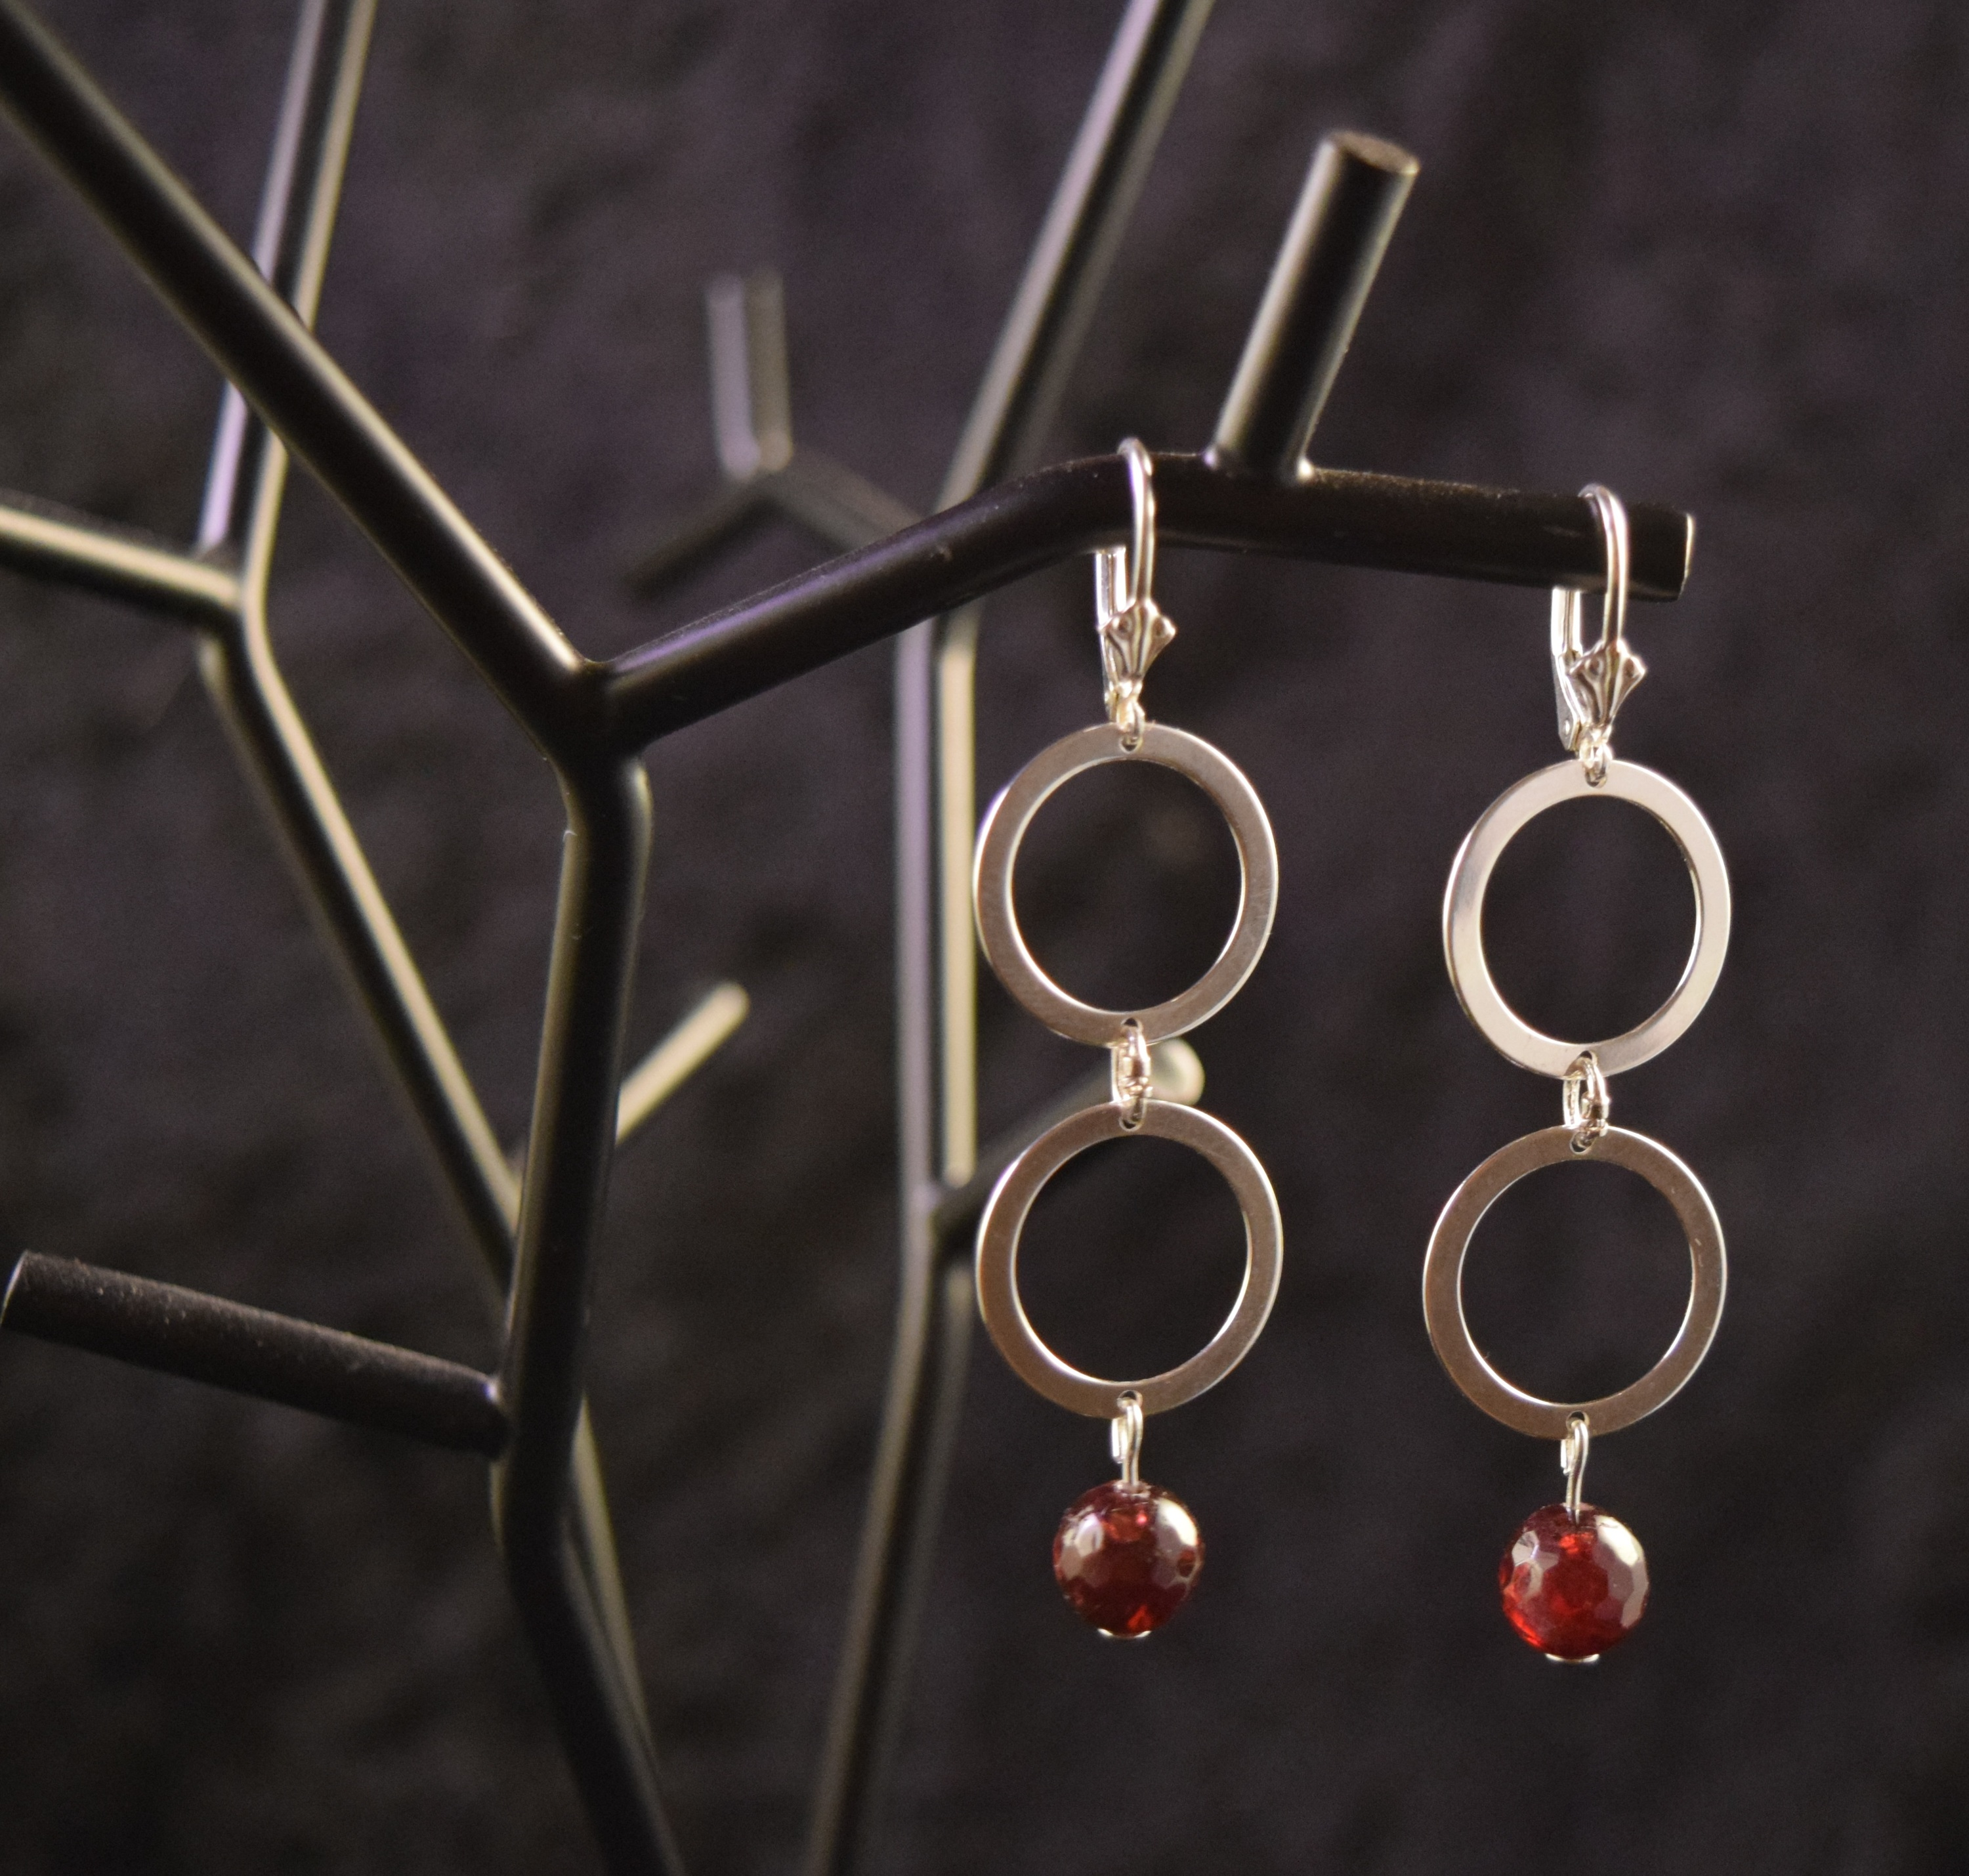 Sve013 double round dangling earrings w faceted garnets ejayvh